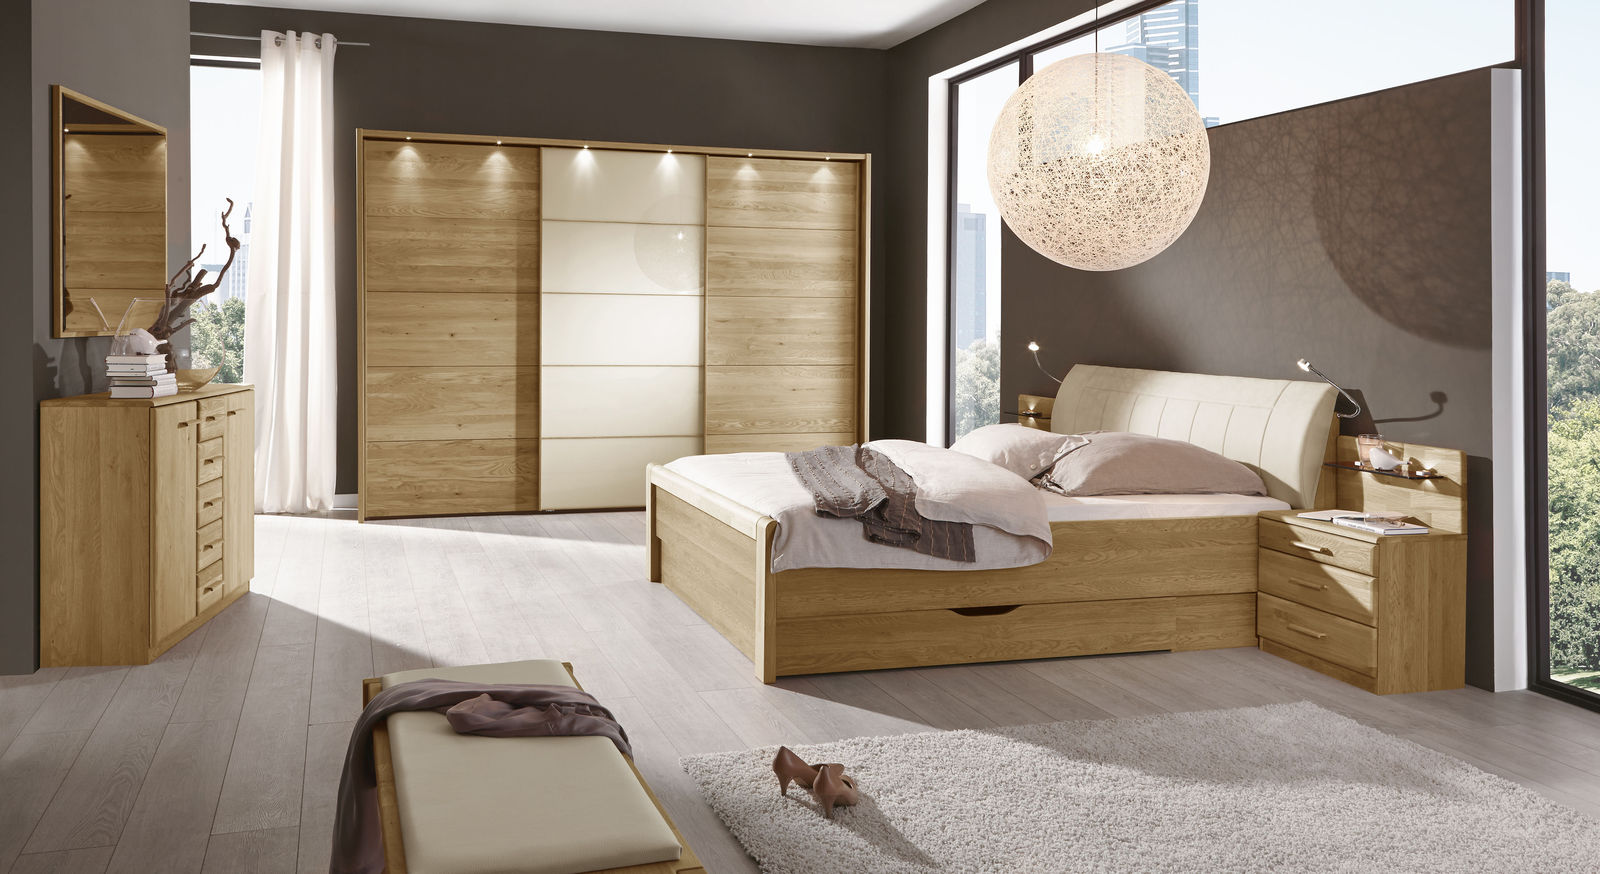 wandgestaltung schlafzimmer holz inspiration design raum und m bel f r ihre. Black Bedroom Furniture Sets. Home Design Ideas